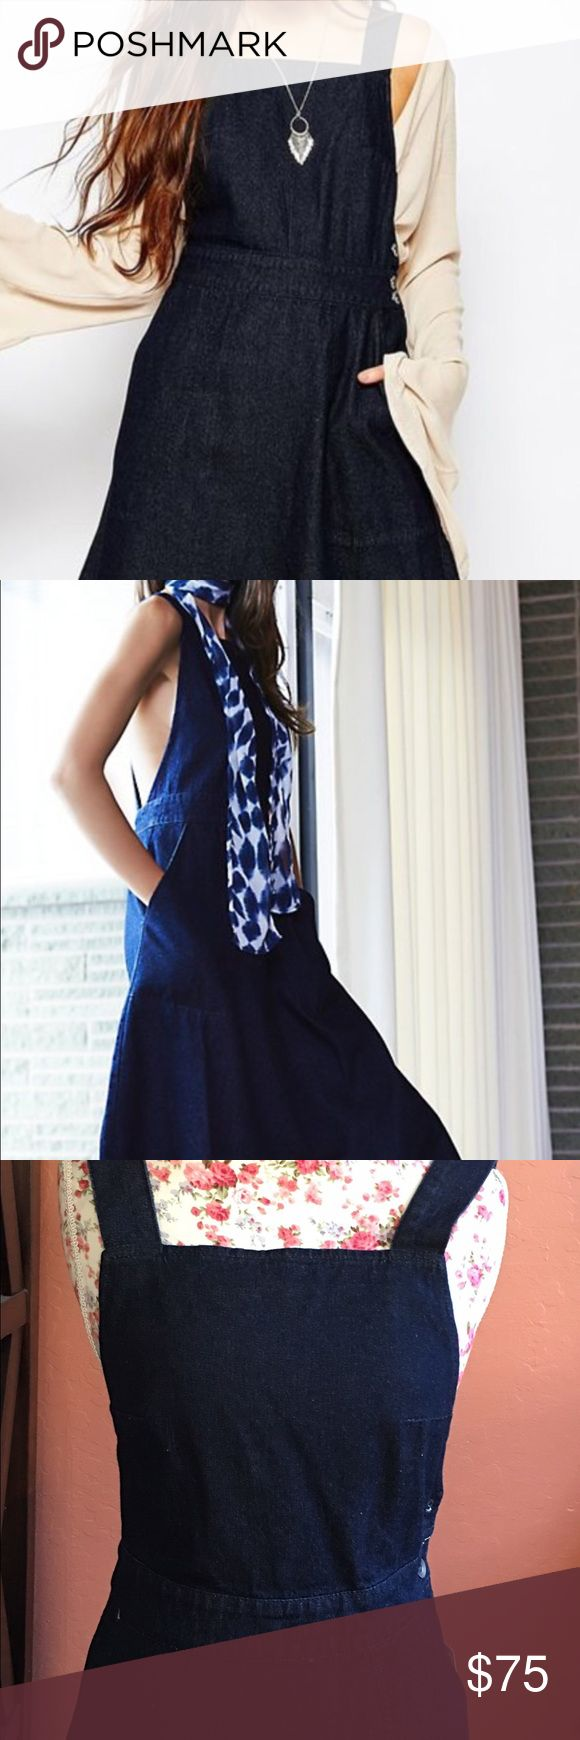 Free People Denim Apron Midi Dress Super cute and stylish apron dress with daring crisscross back. It has a square neckline, zipper closure, 2 pockets at front and with an A line silhouette. This is a dark blue wash color. This could be perfect for work or play. Free People Dresses Midi